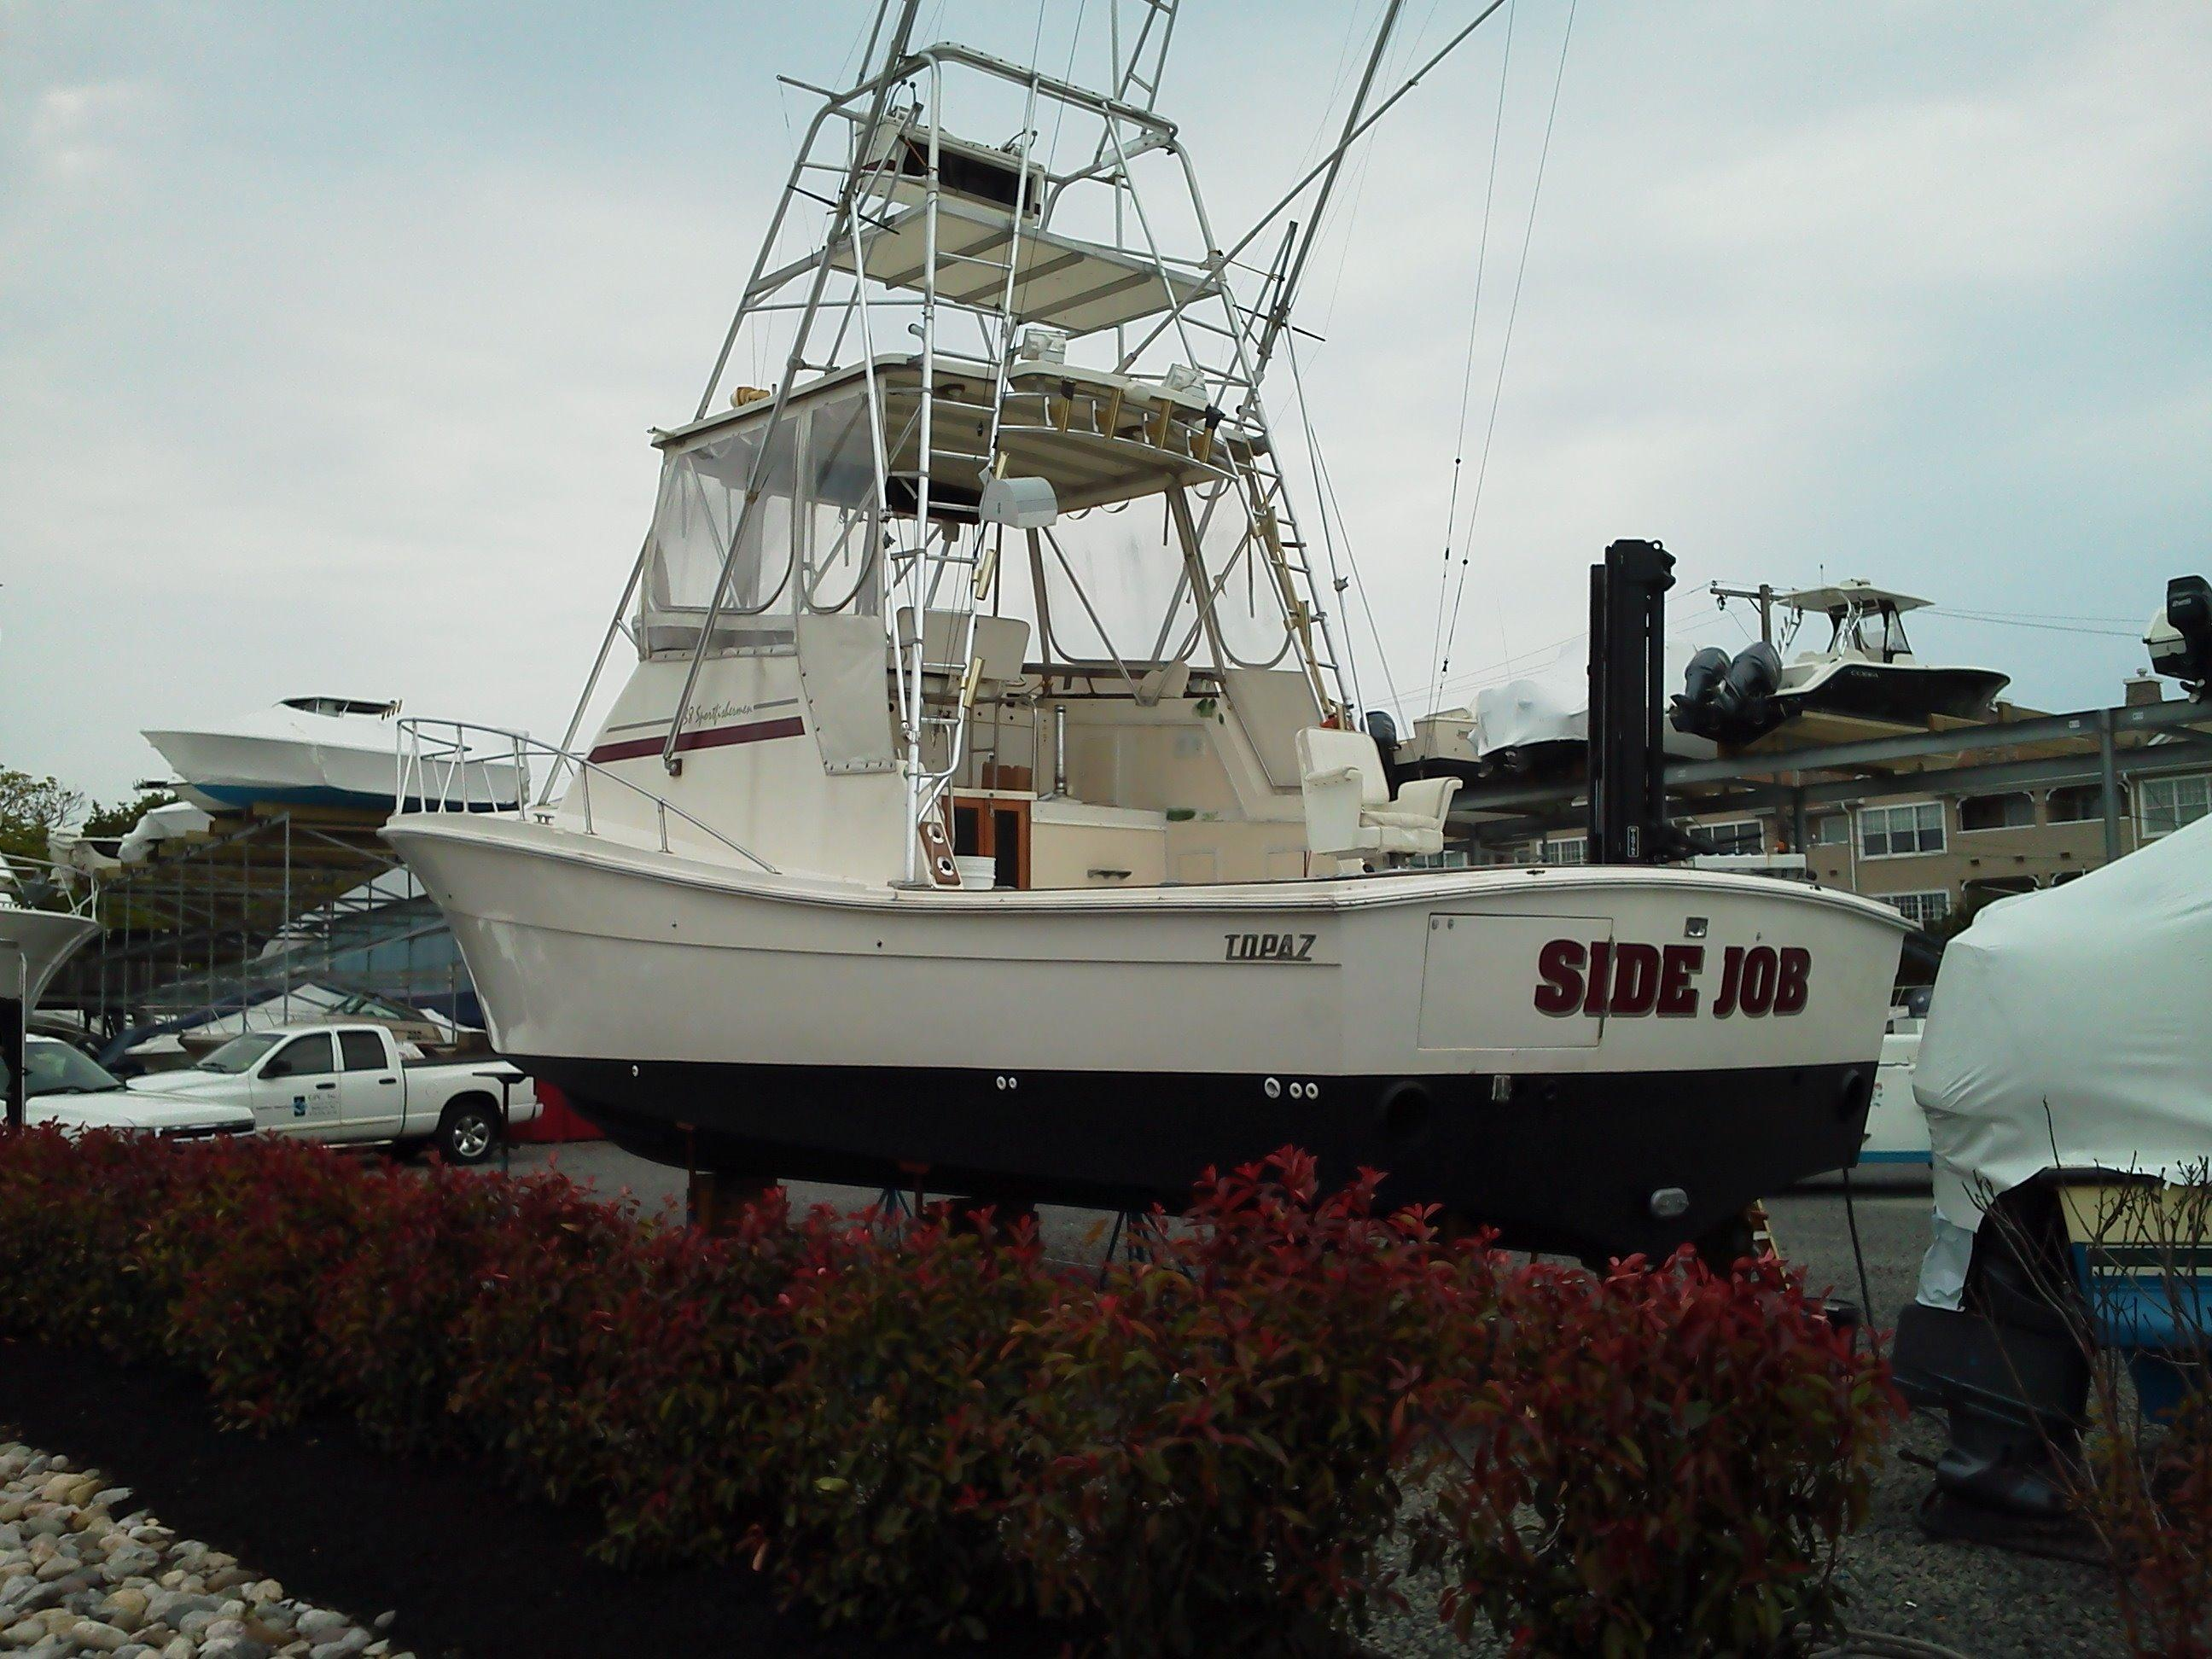 For Sale 29 Topaz - The Hull Truth - Boating and Fishing Forum